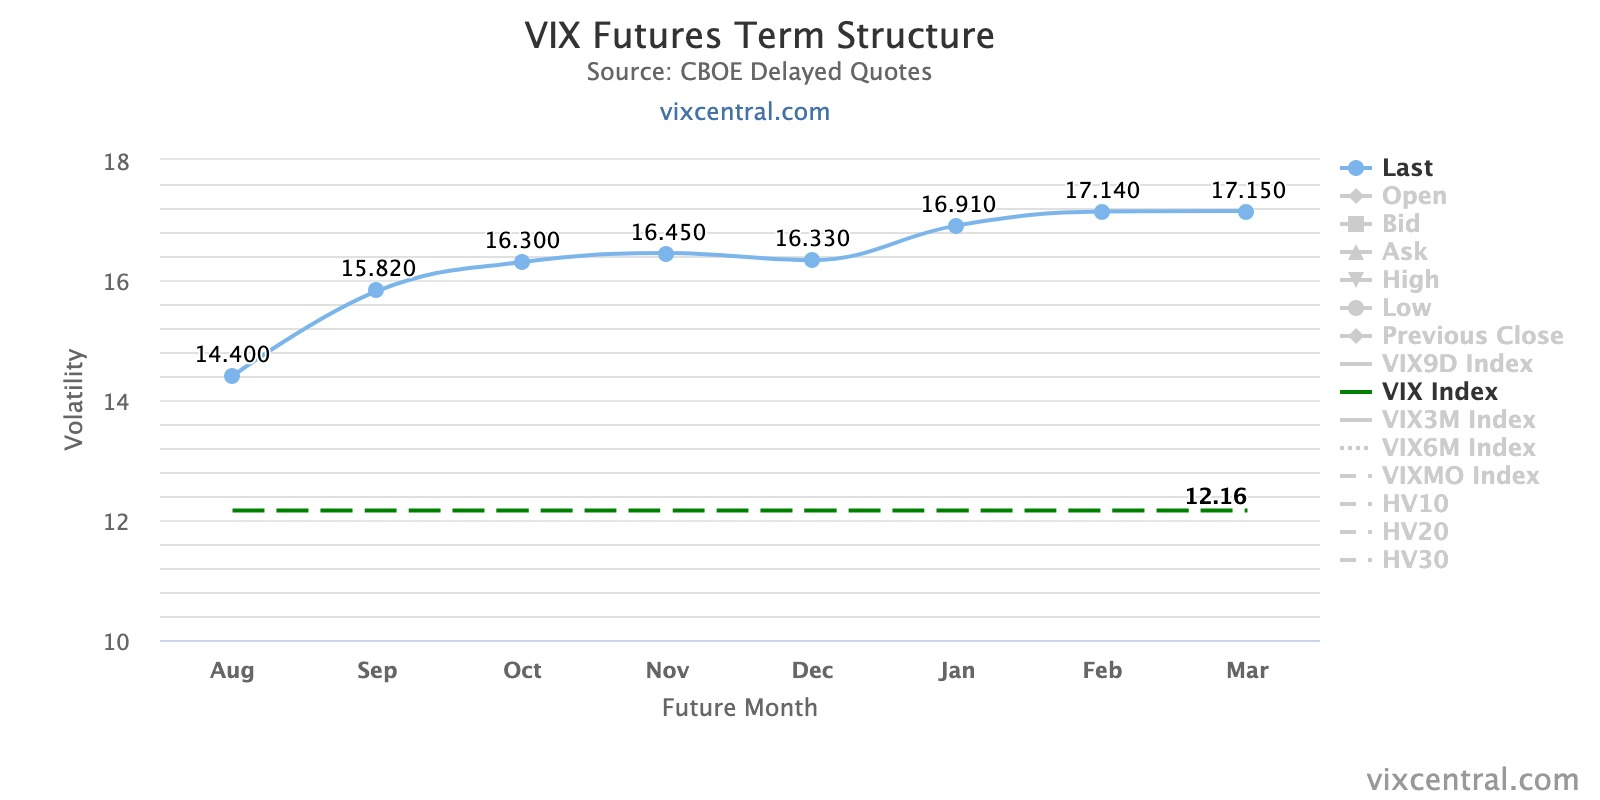 vix-futures-term-structu